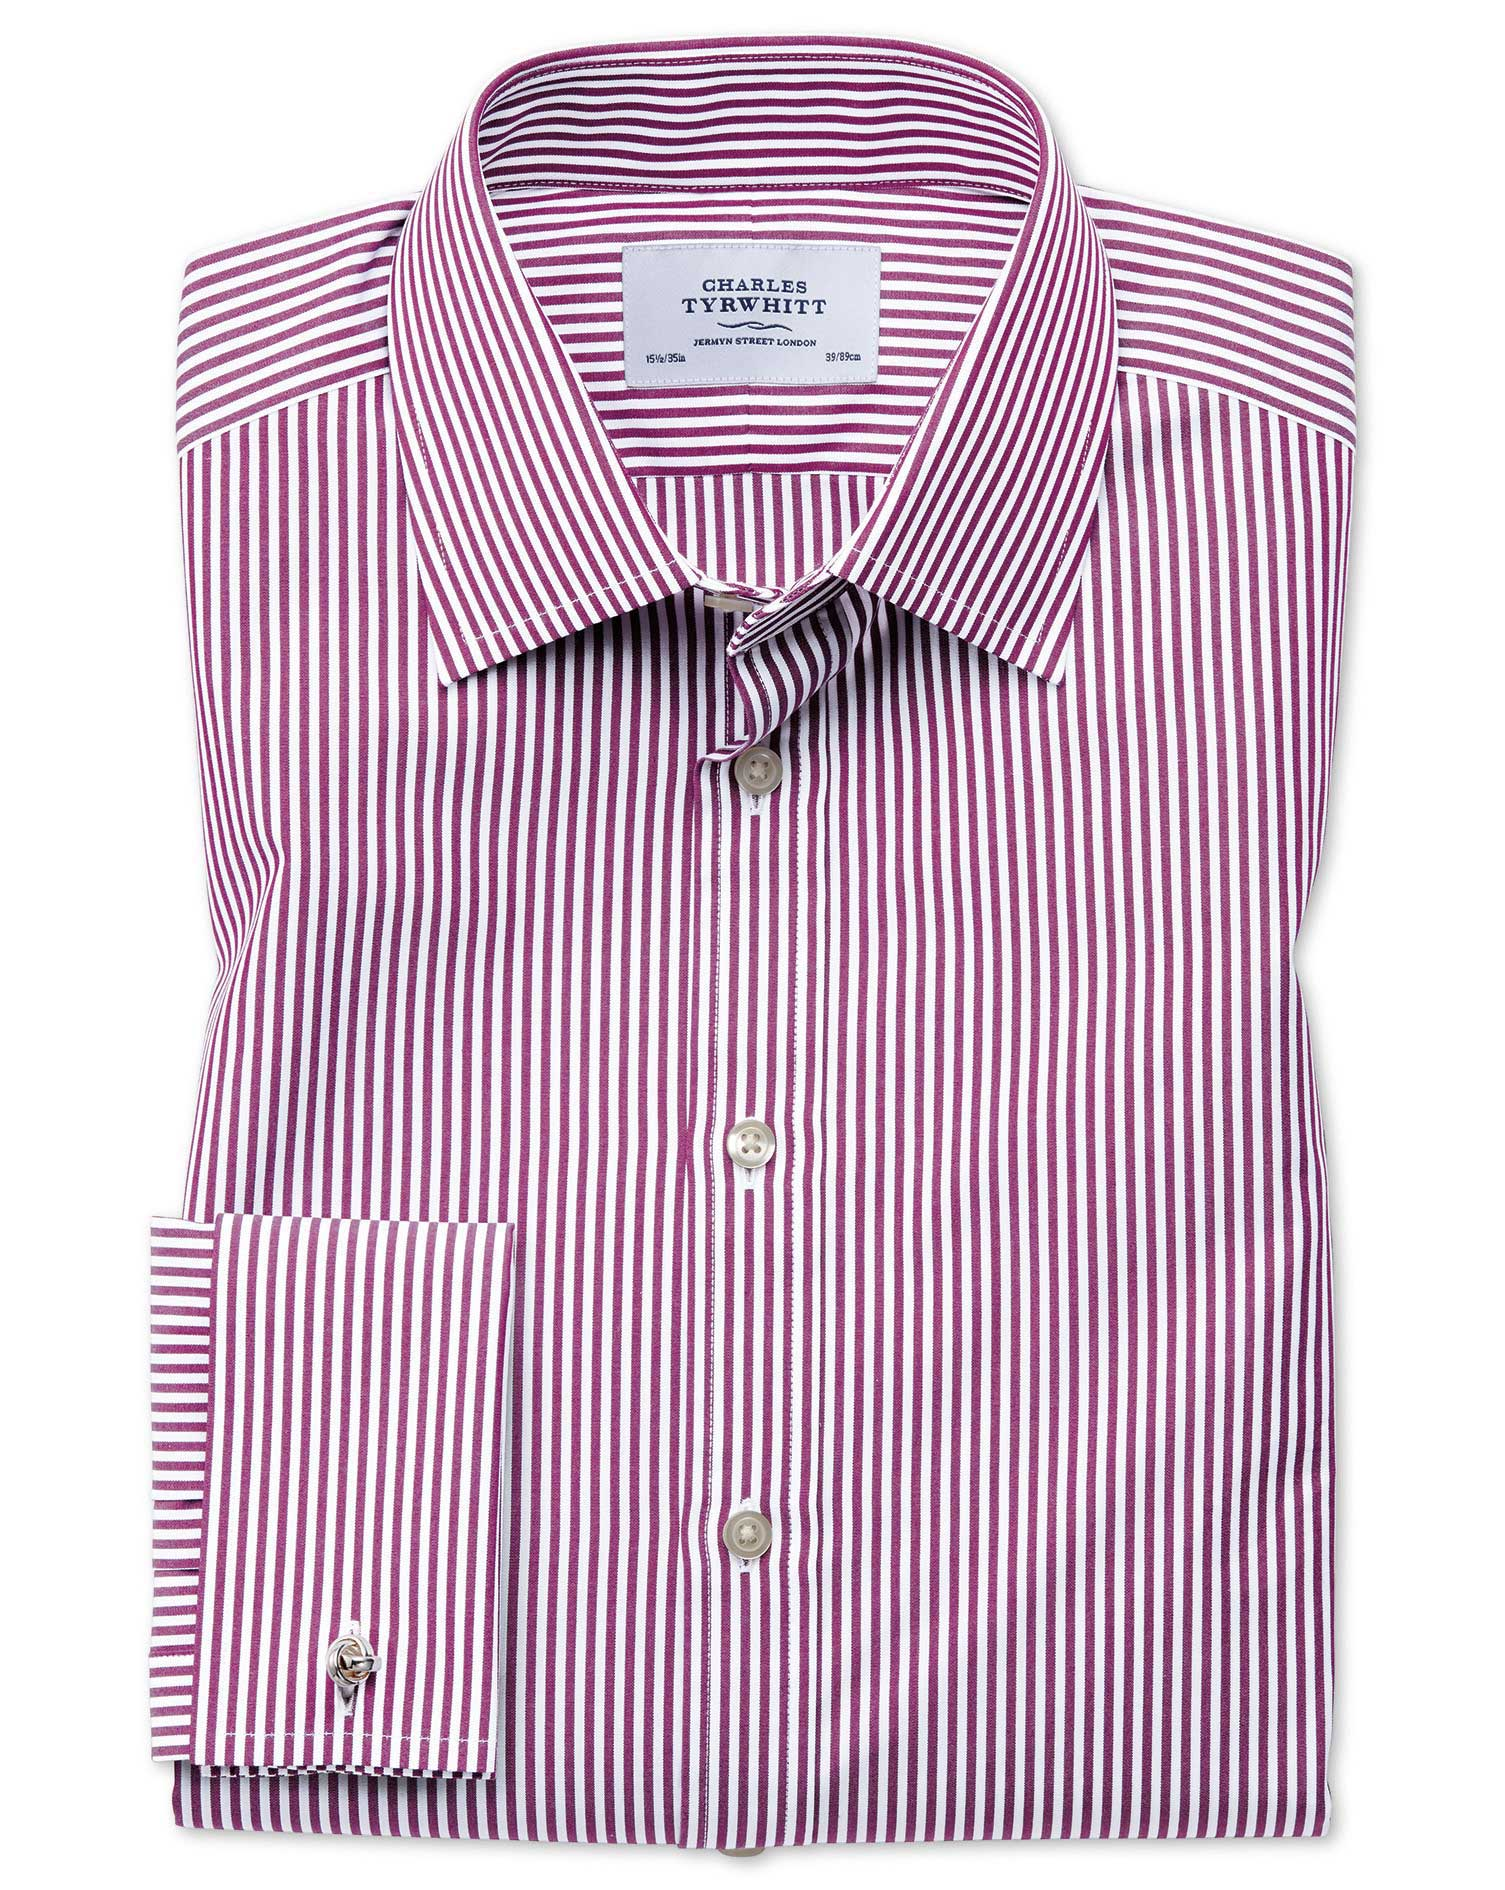 Classic Fit Bengal Stripe Purple Cotton Formal Shirt Single Cuff Size 15.5/34 by Charles Tyrwhitt